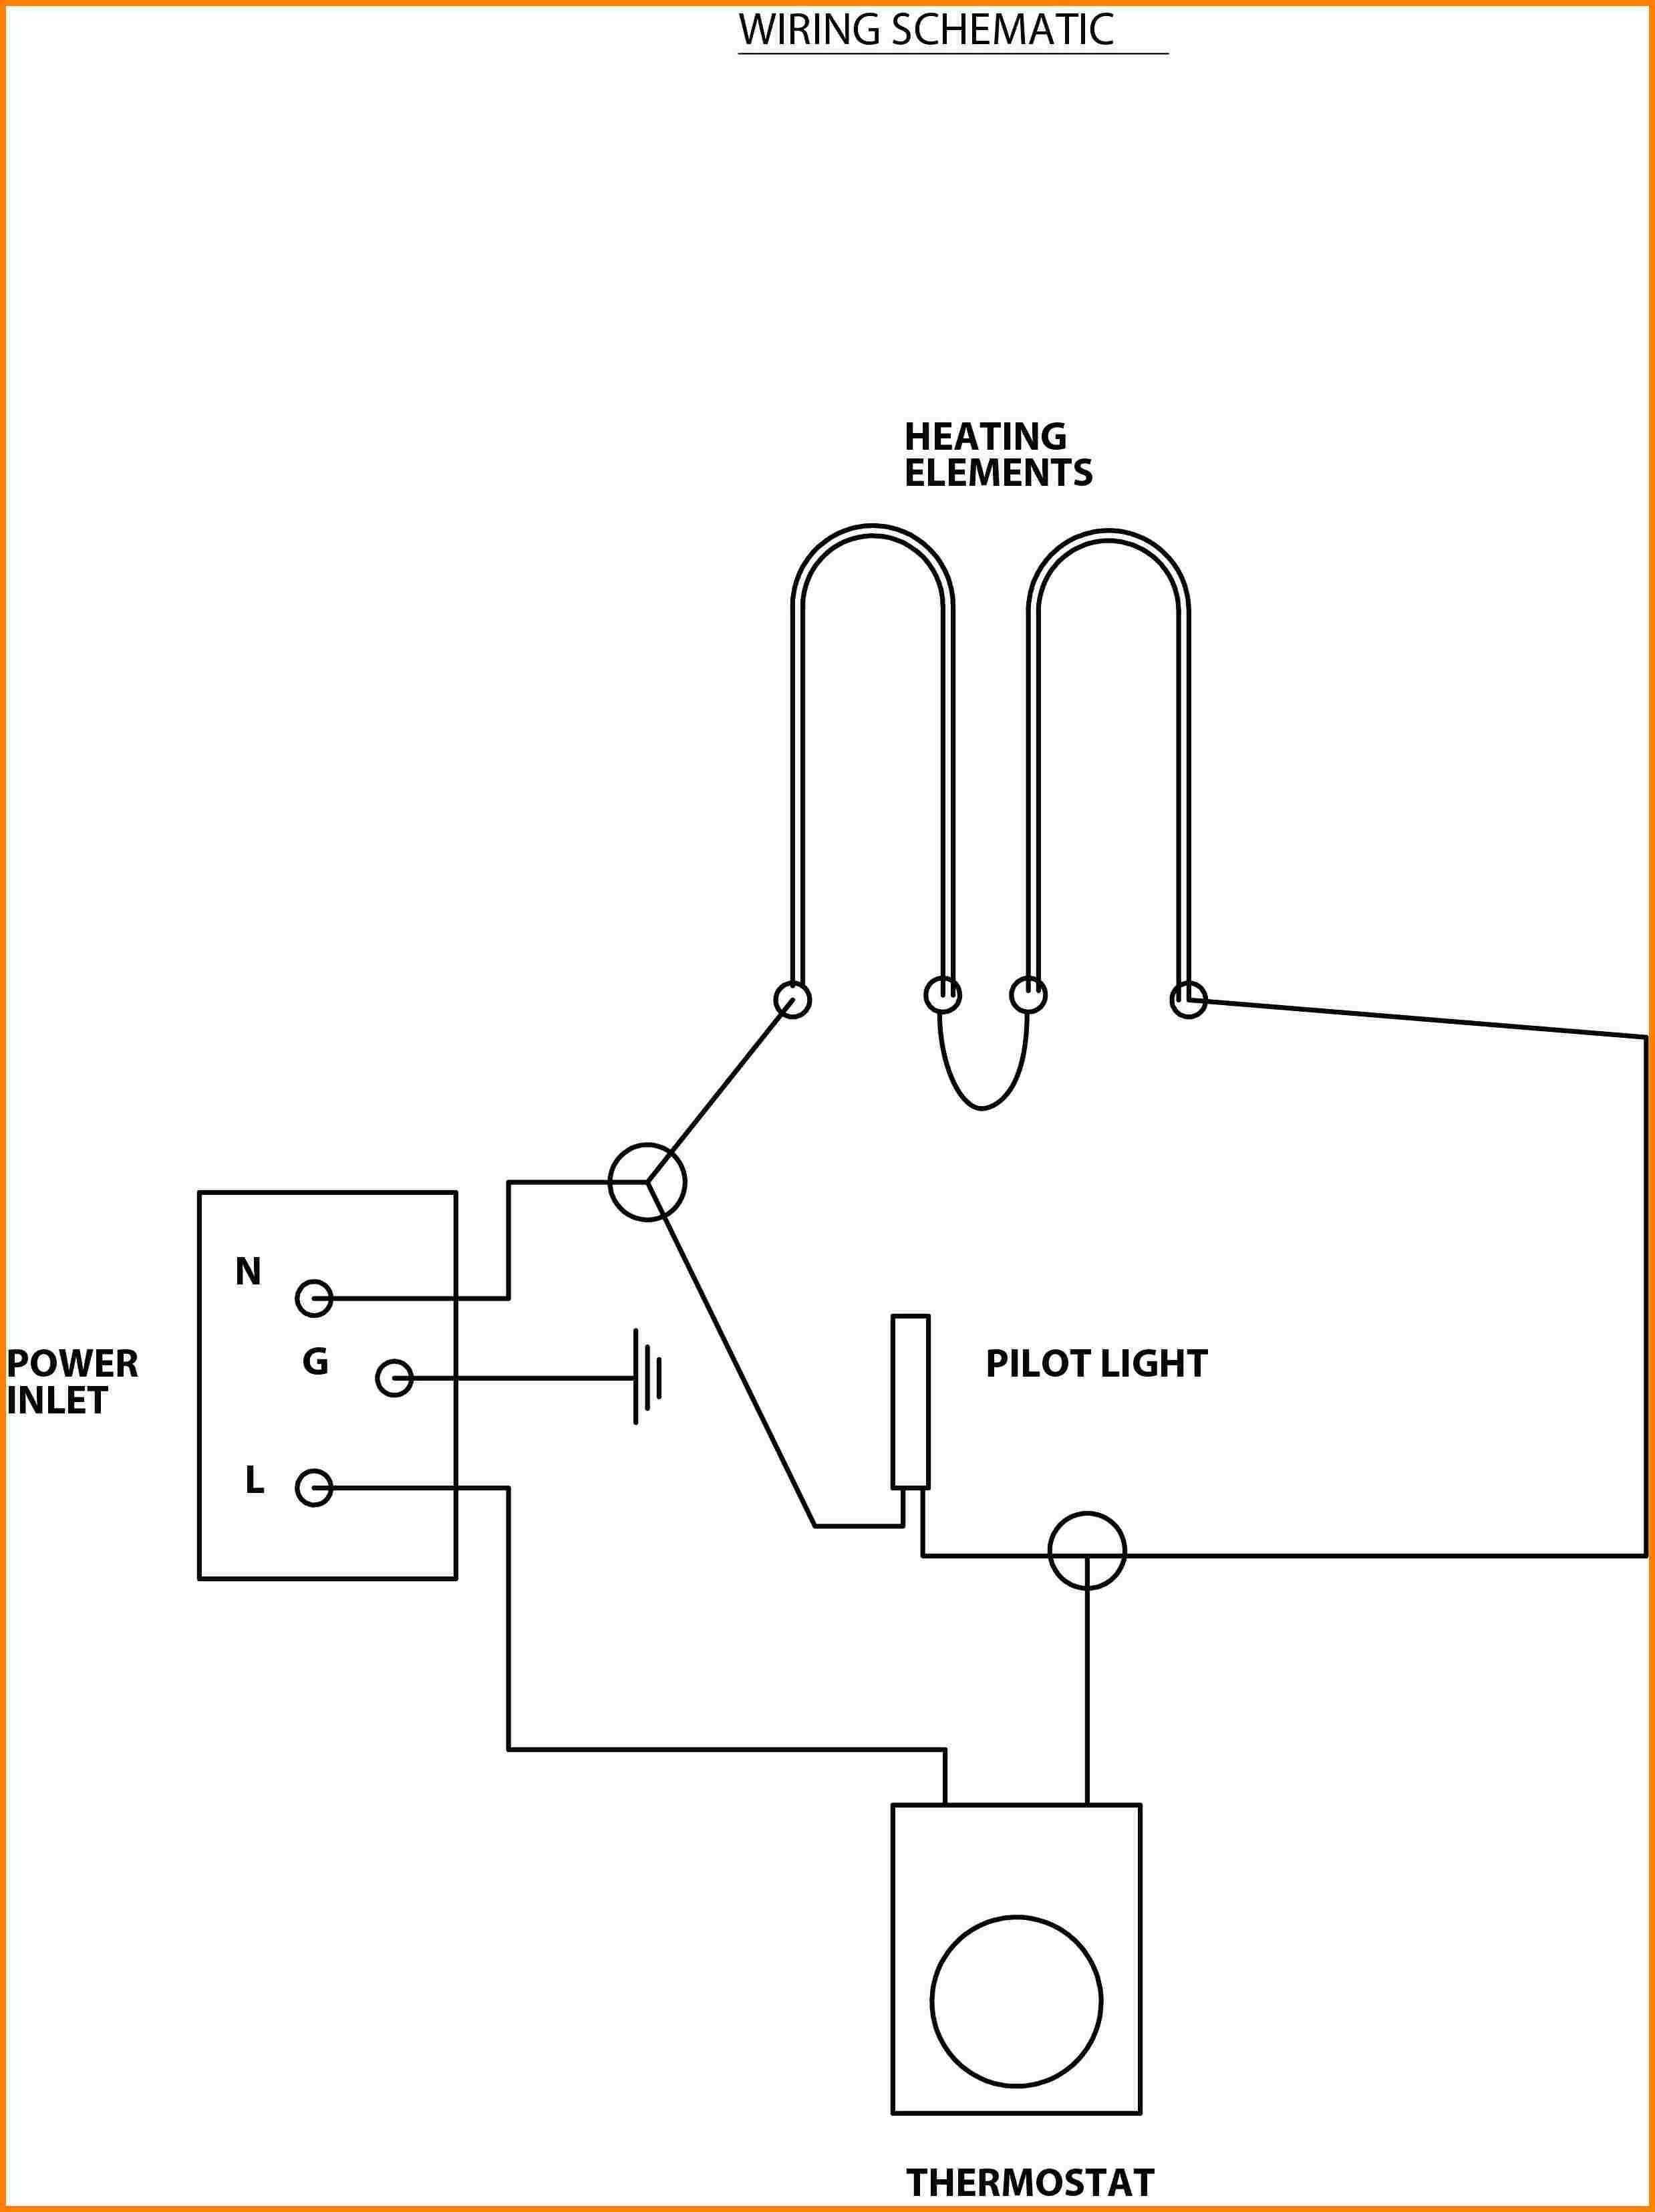 New Wiring Baseboard Heaters to thermostat Diagram #